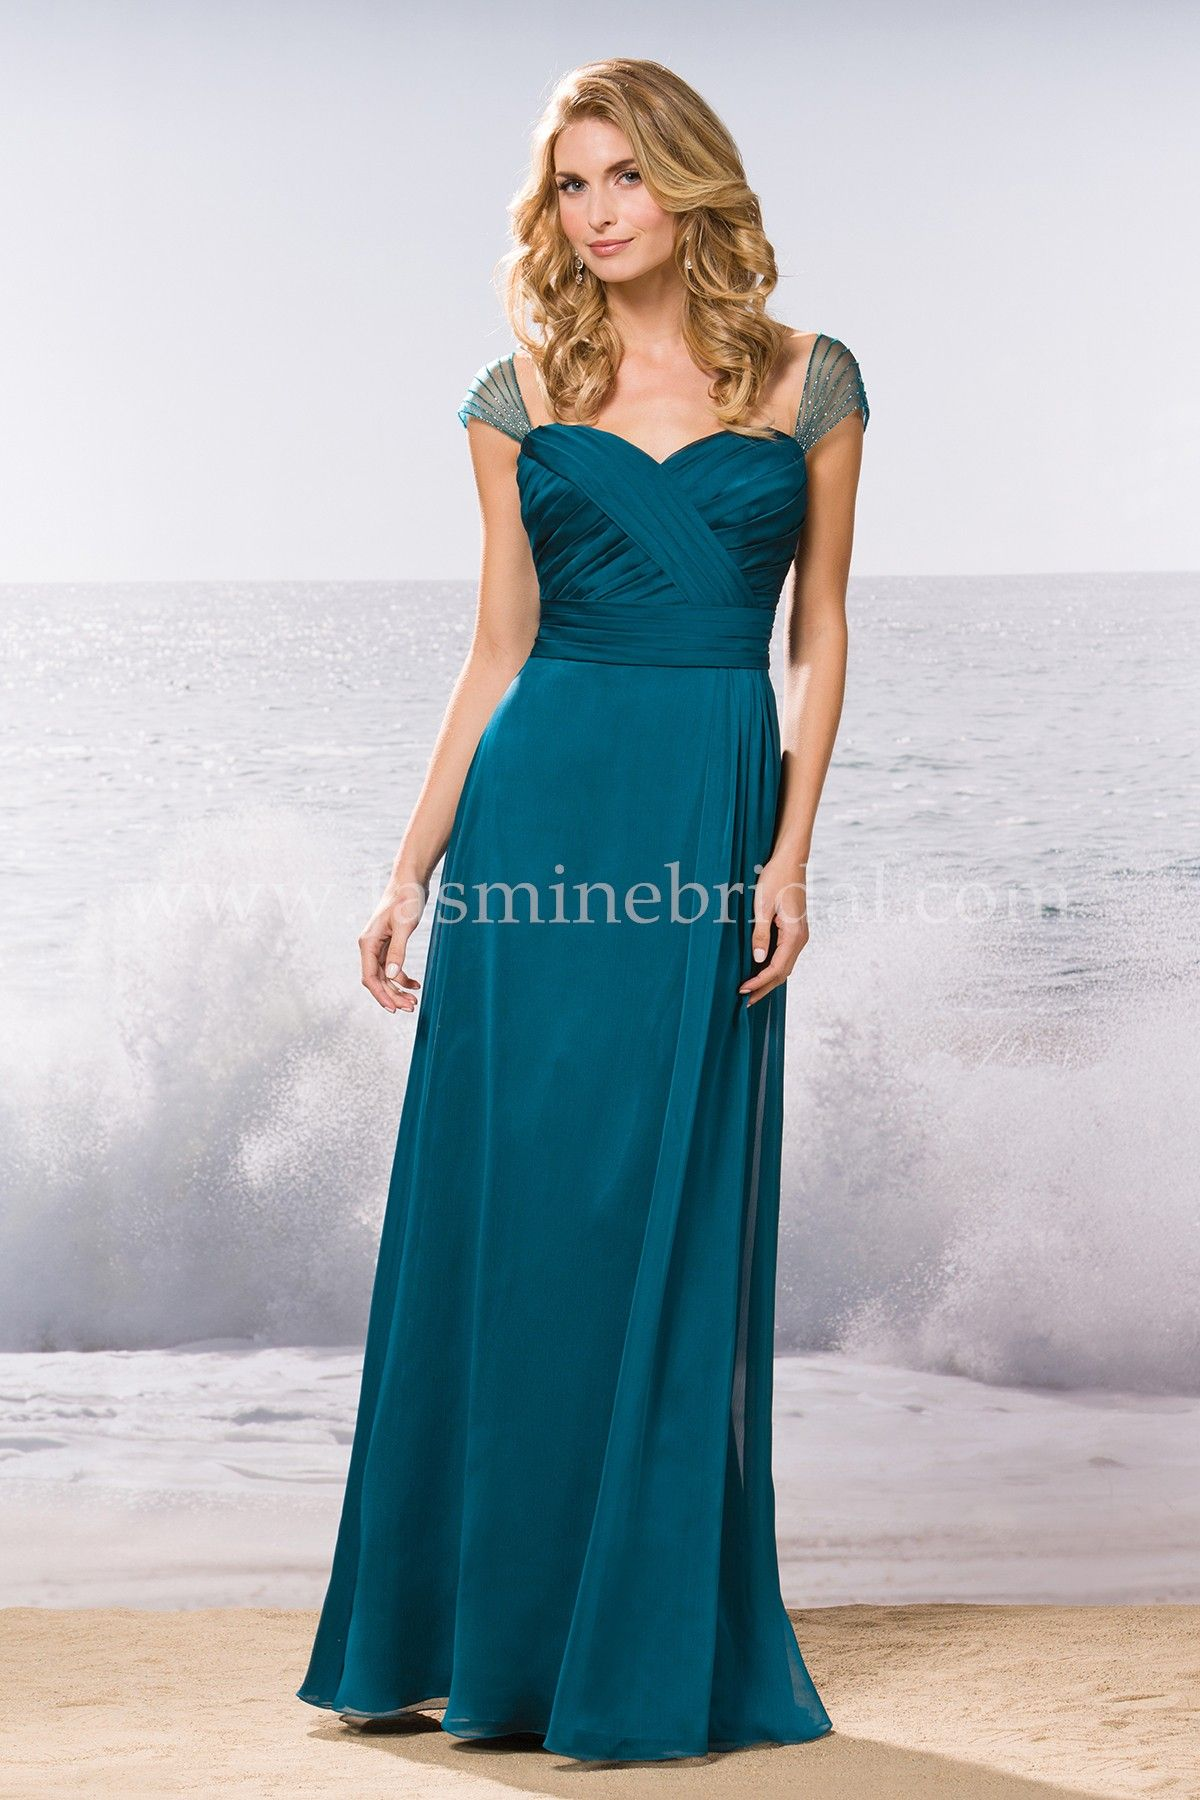 316ed2be6f3cf Jasmine Bridal Bridesmaid Dress Belsoie Style L174055 in Teal // An elegant  and stylish choice for bridesmaids of any bridal party, this Teal bridesmaid  ...